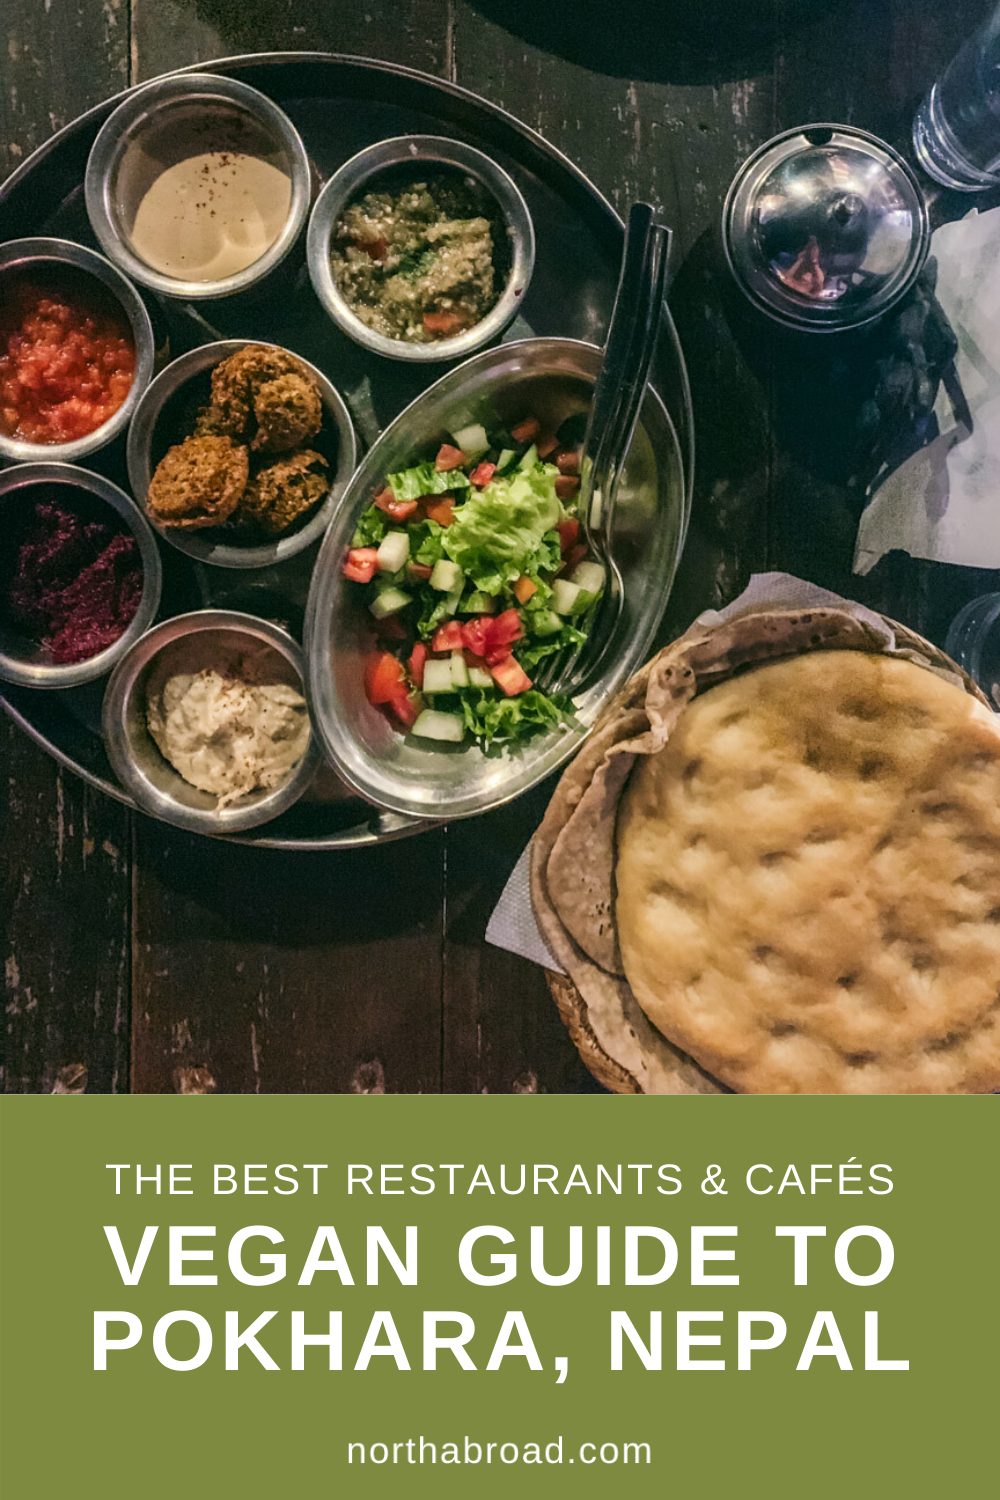 Everything you need to know about finding vegan and vegetarian food in Pokhara, Nepal